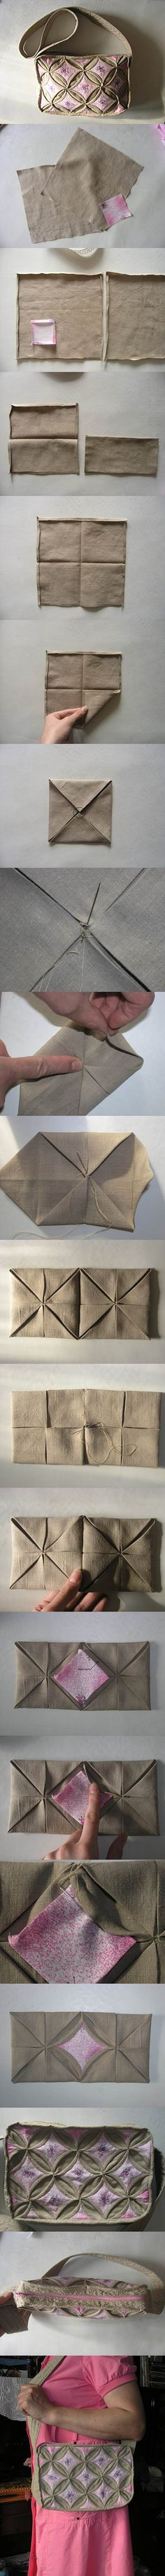 DIY Origami Style Handbag | iCreativeIdeas.com Like Us on Facebook ==> https://www.facebook.com/icreativeideas